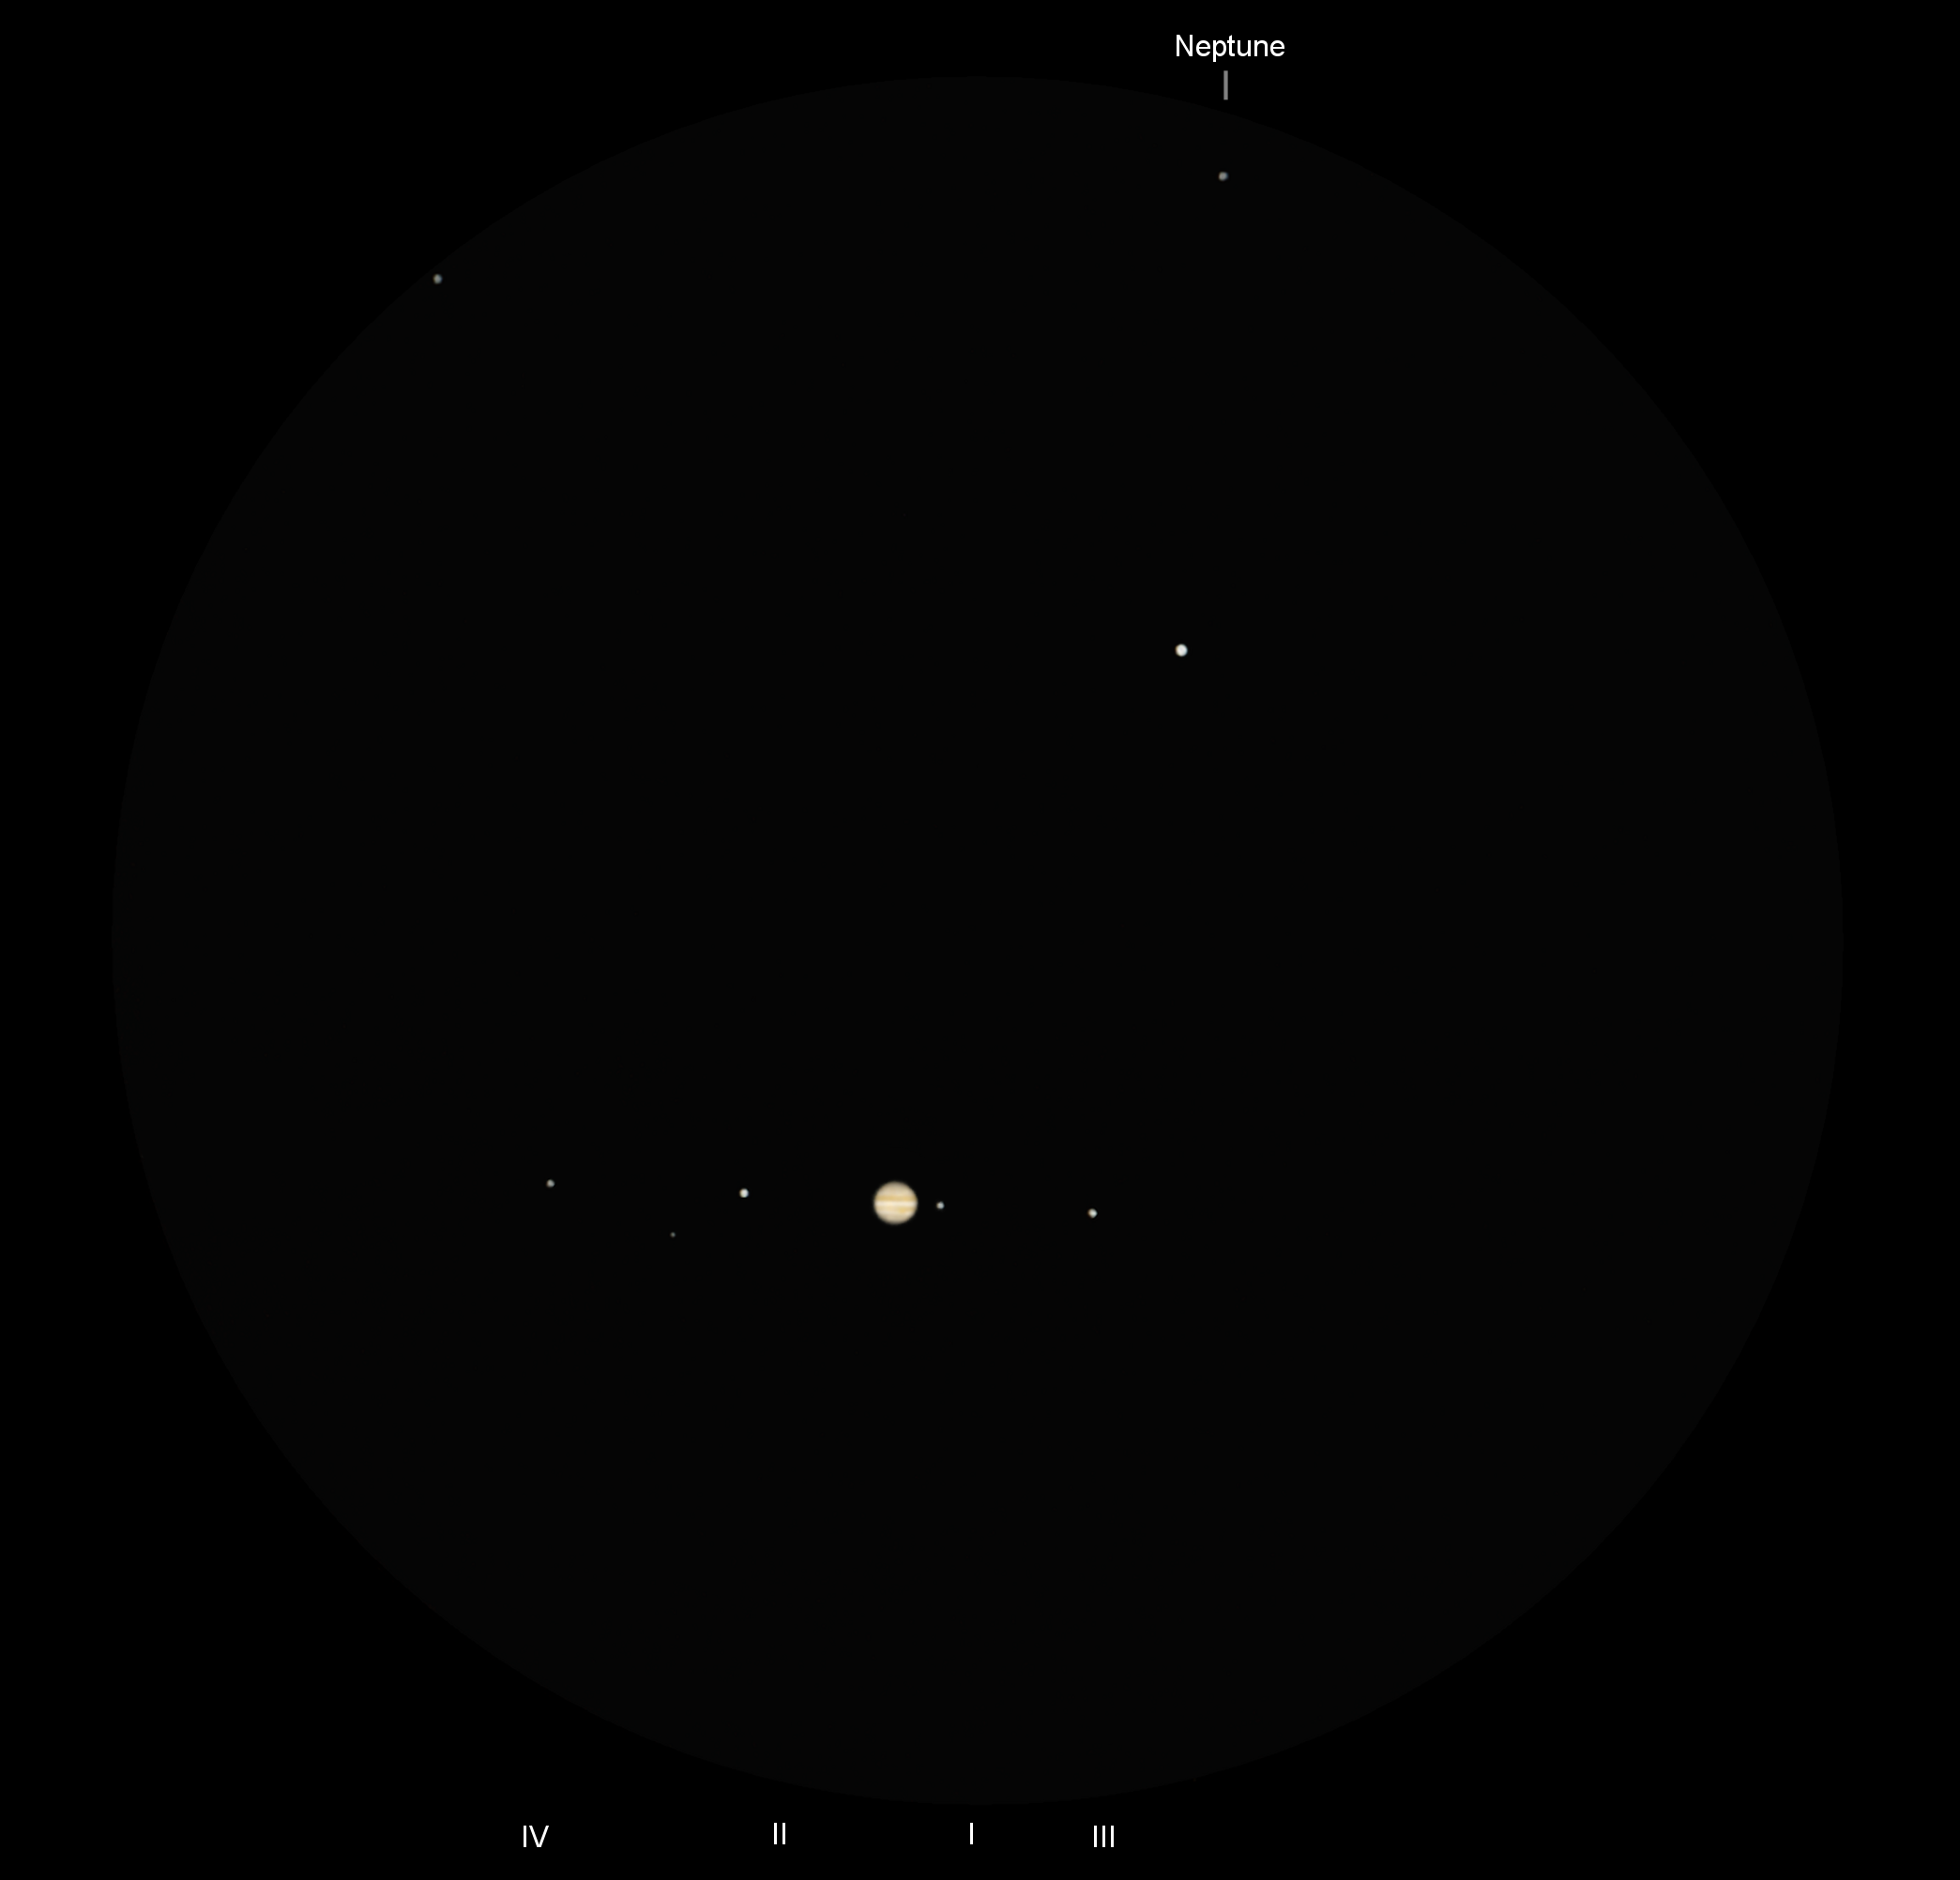 Jupiter-Neptune-T150-md-new.png